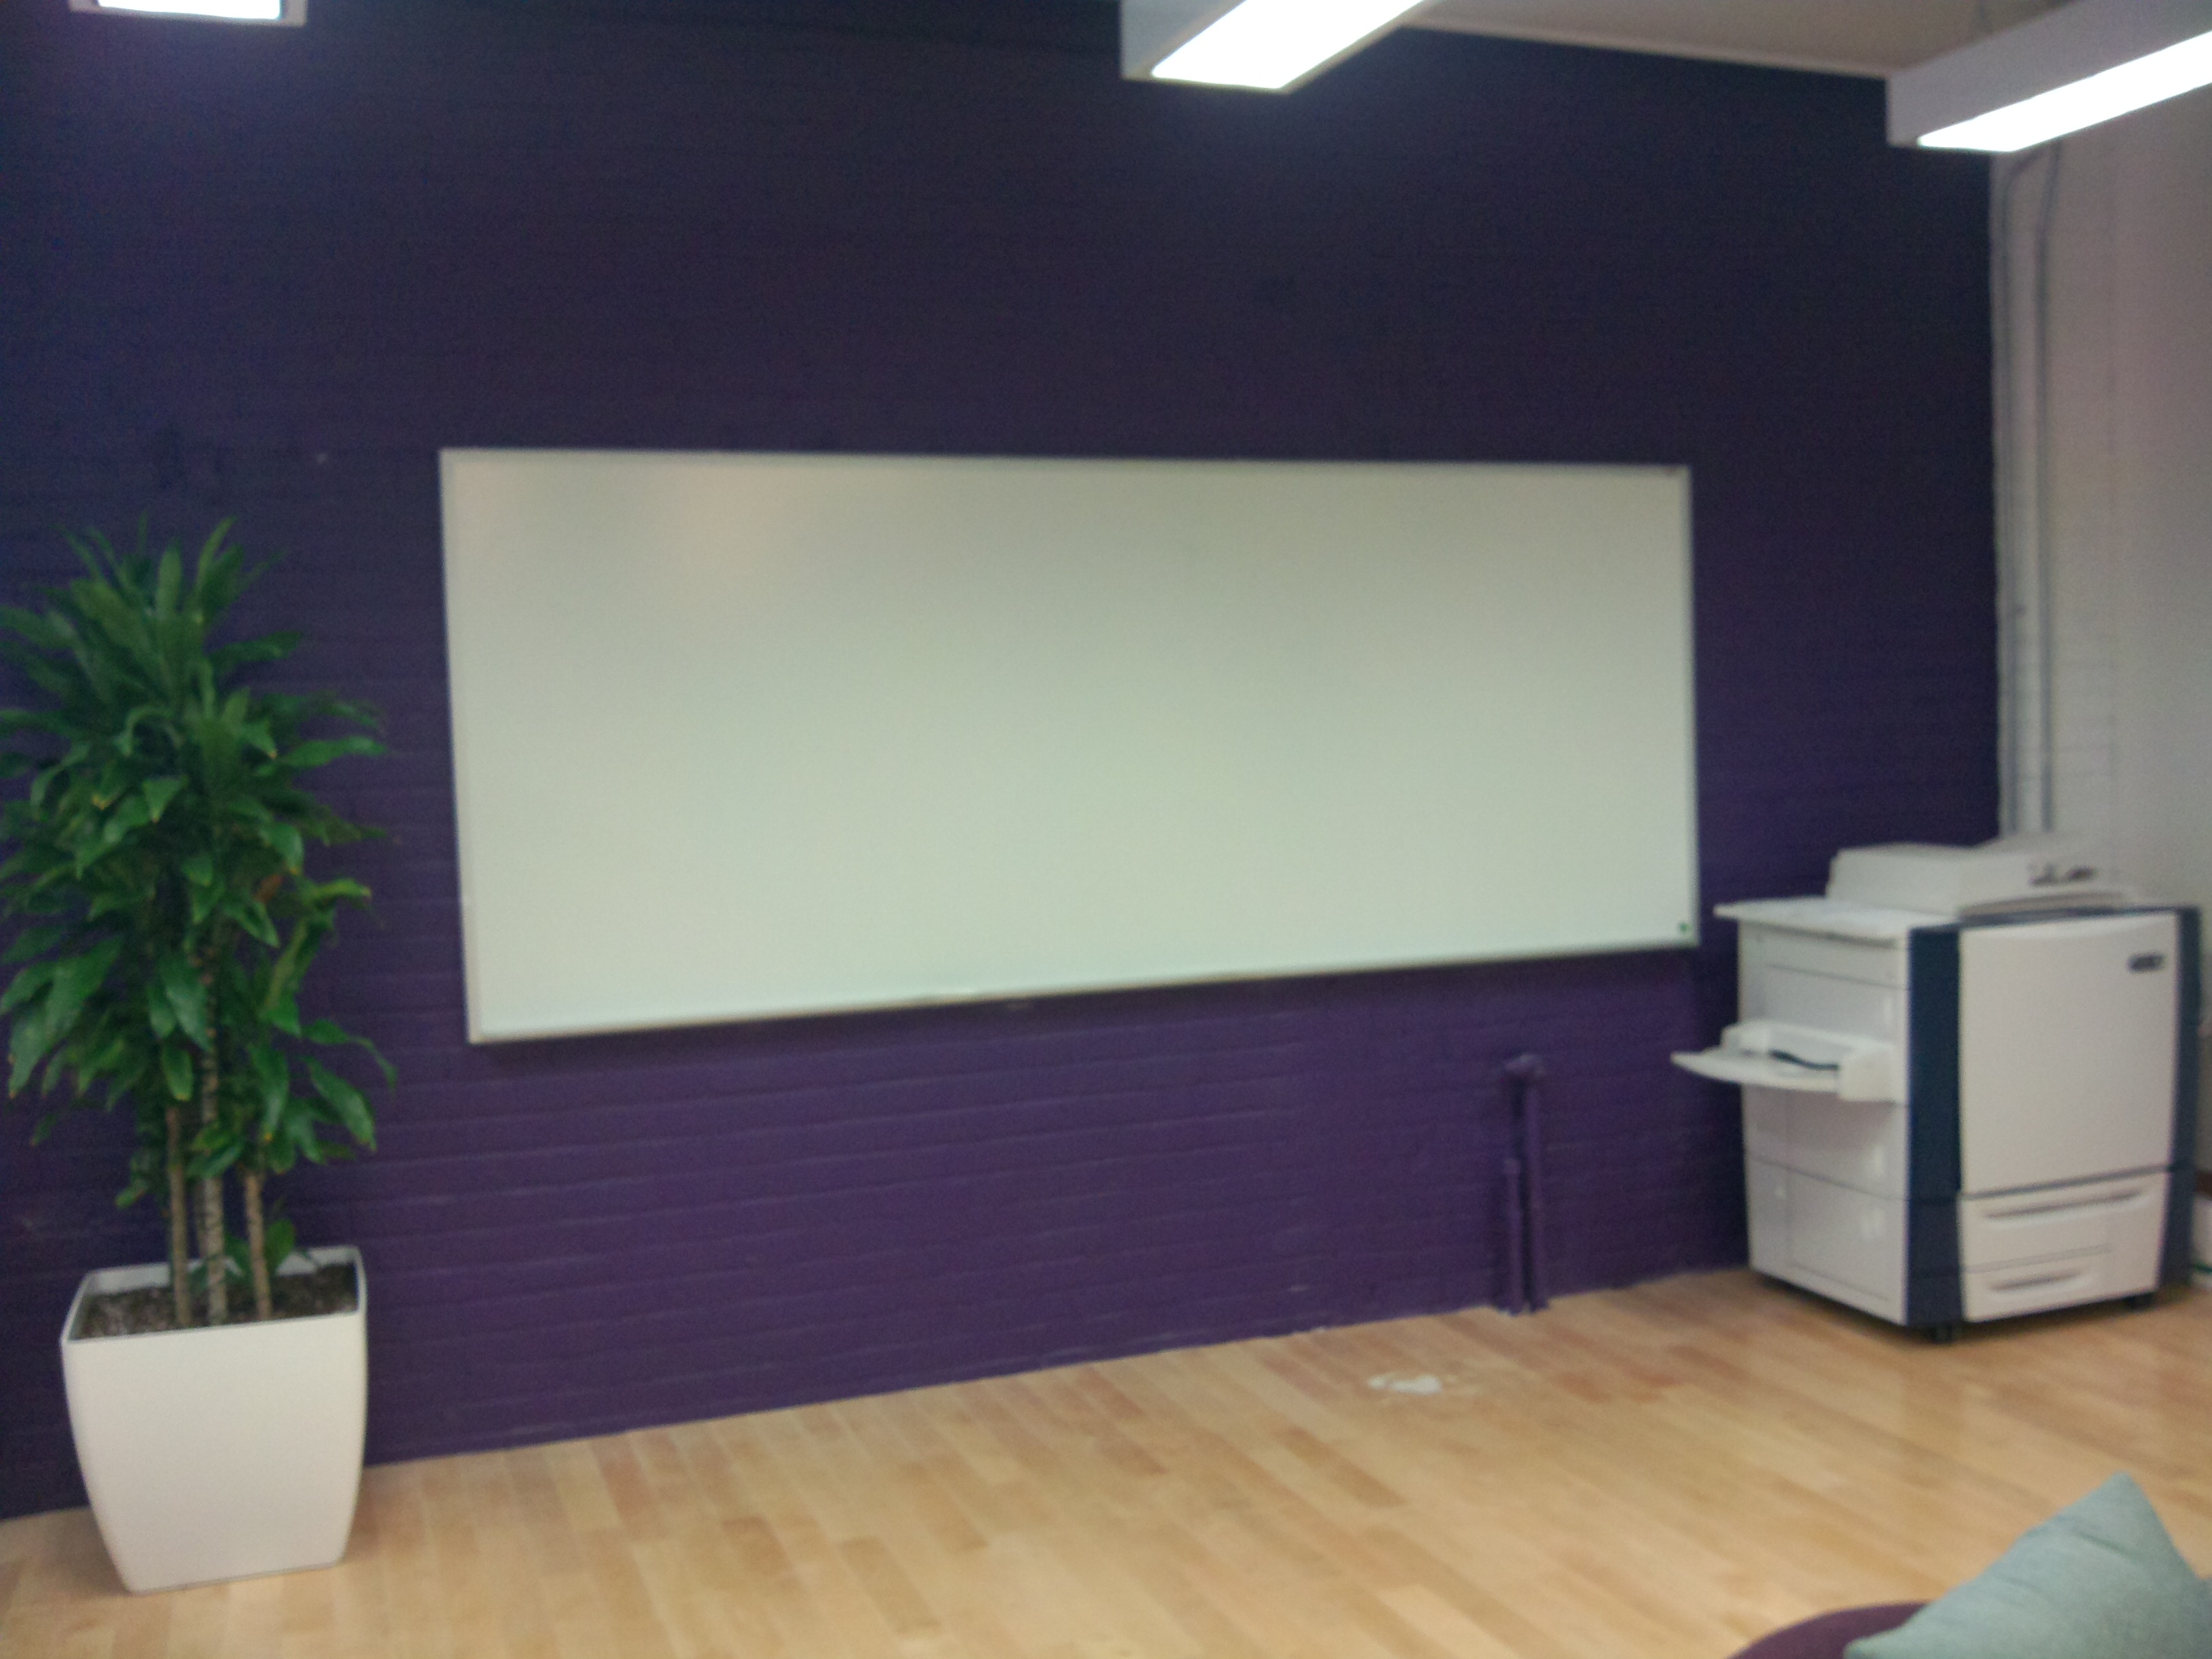 Whiteboard Installation Odd Job Handyman Services Inc